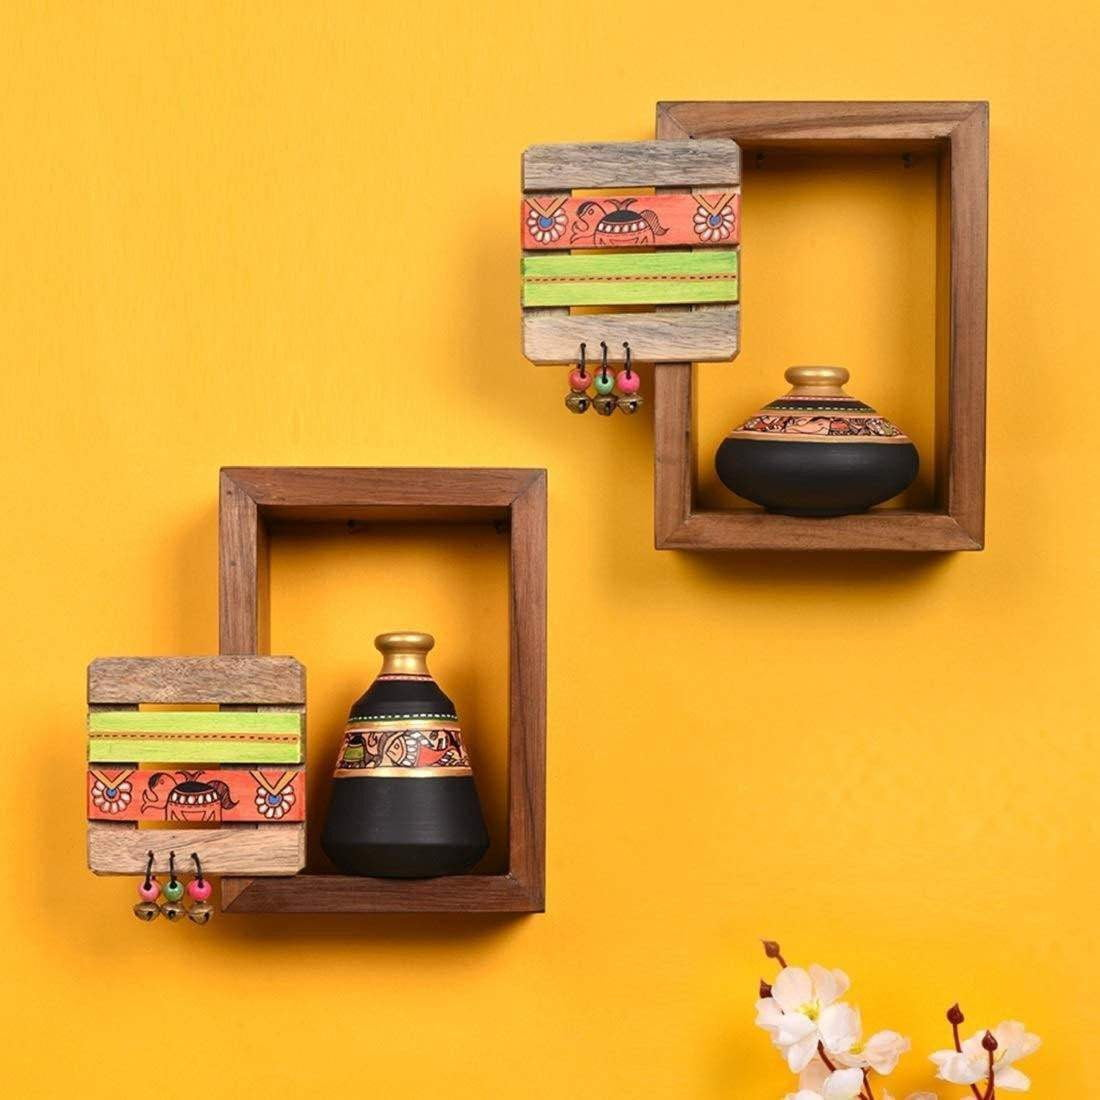 Madhubani Wooden Wall Shelves With Decorative Terracotta Vases